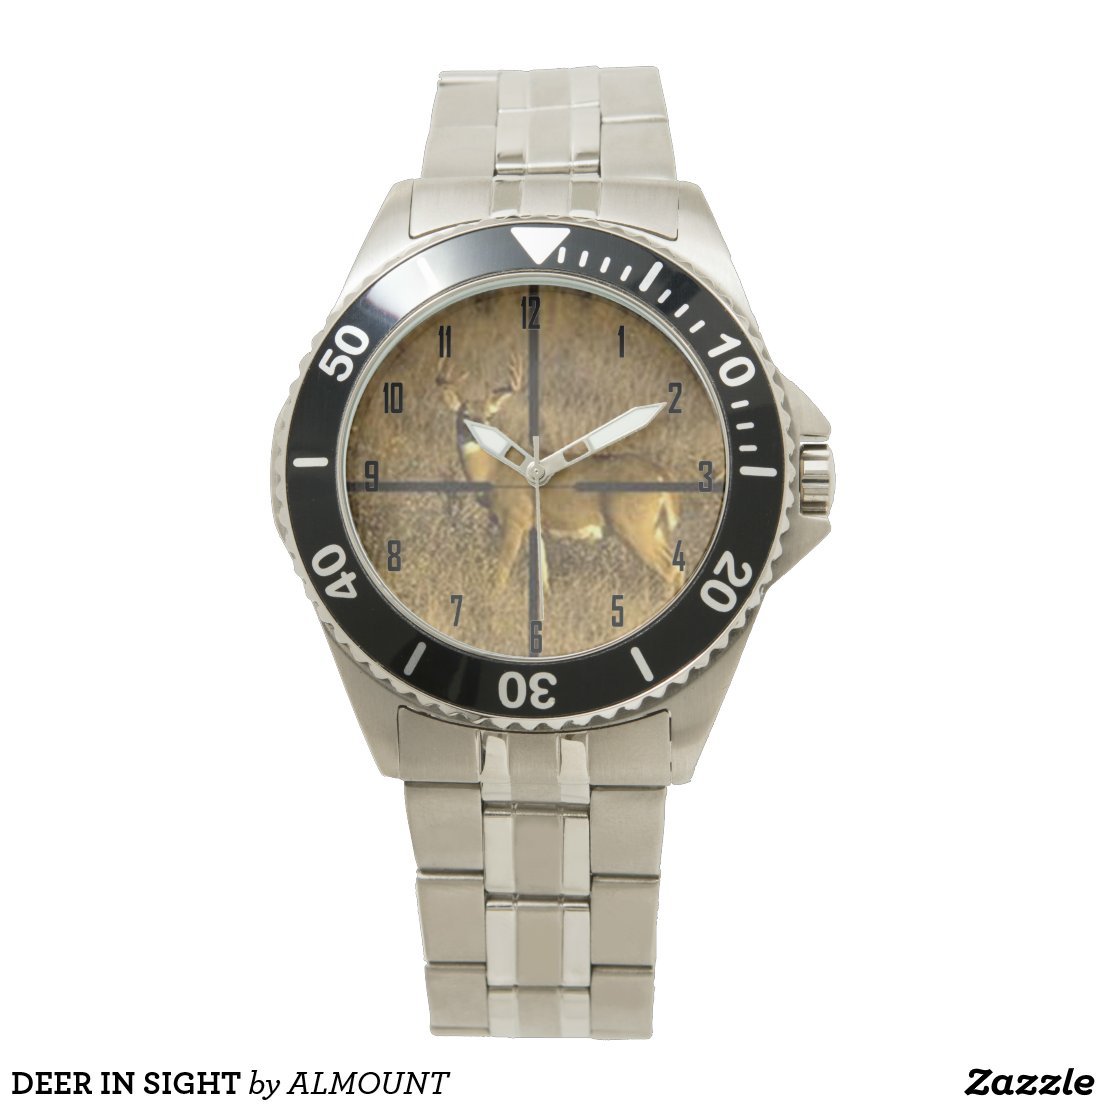 DEER IN SIGHT WRISTWATCH